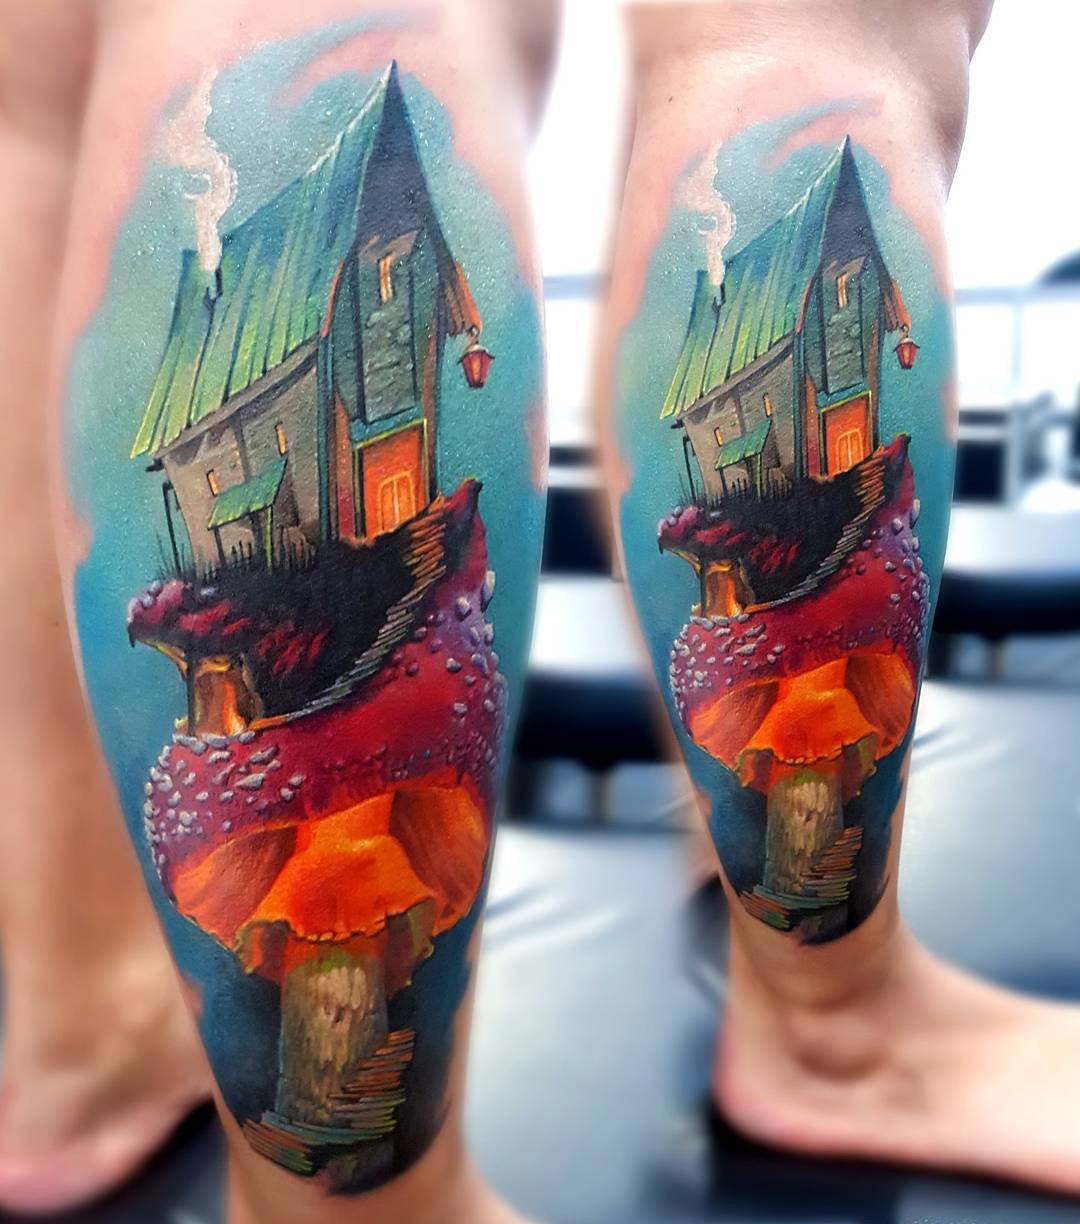 House on a mushroom tattoo